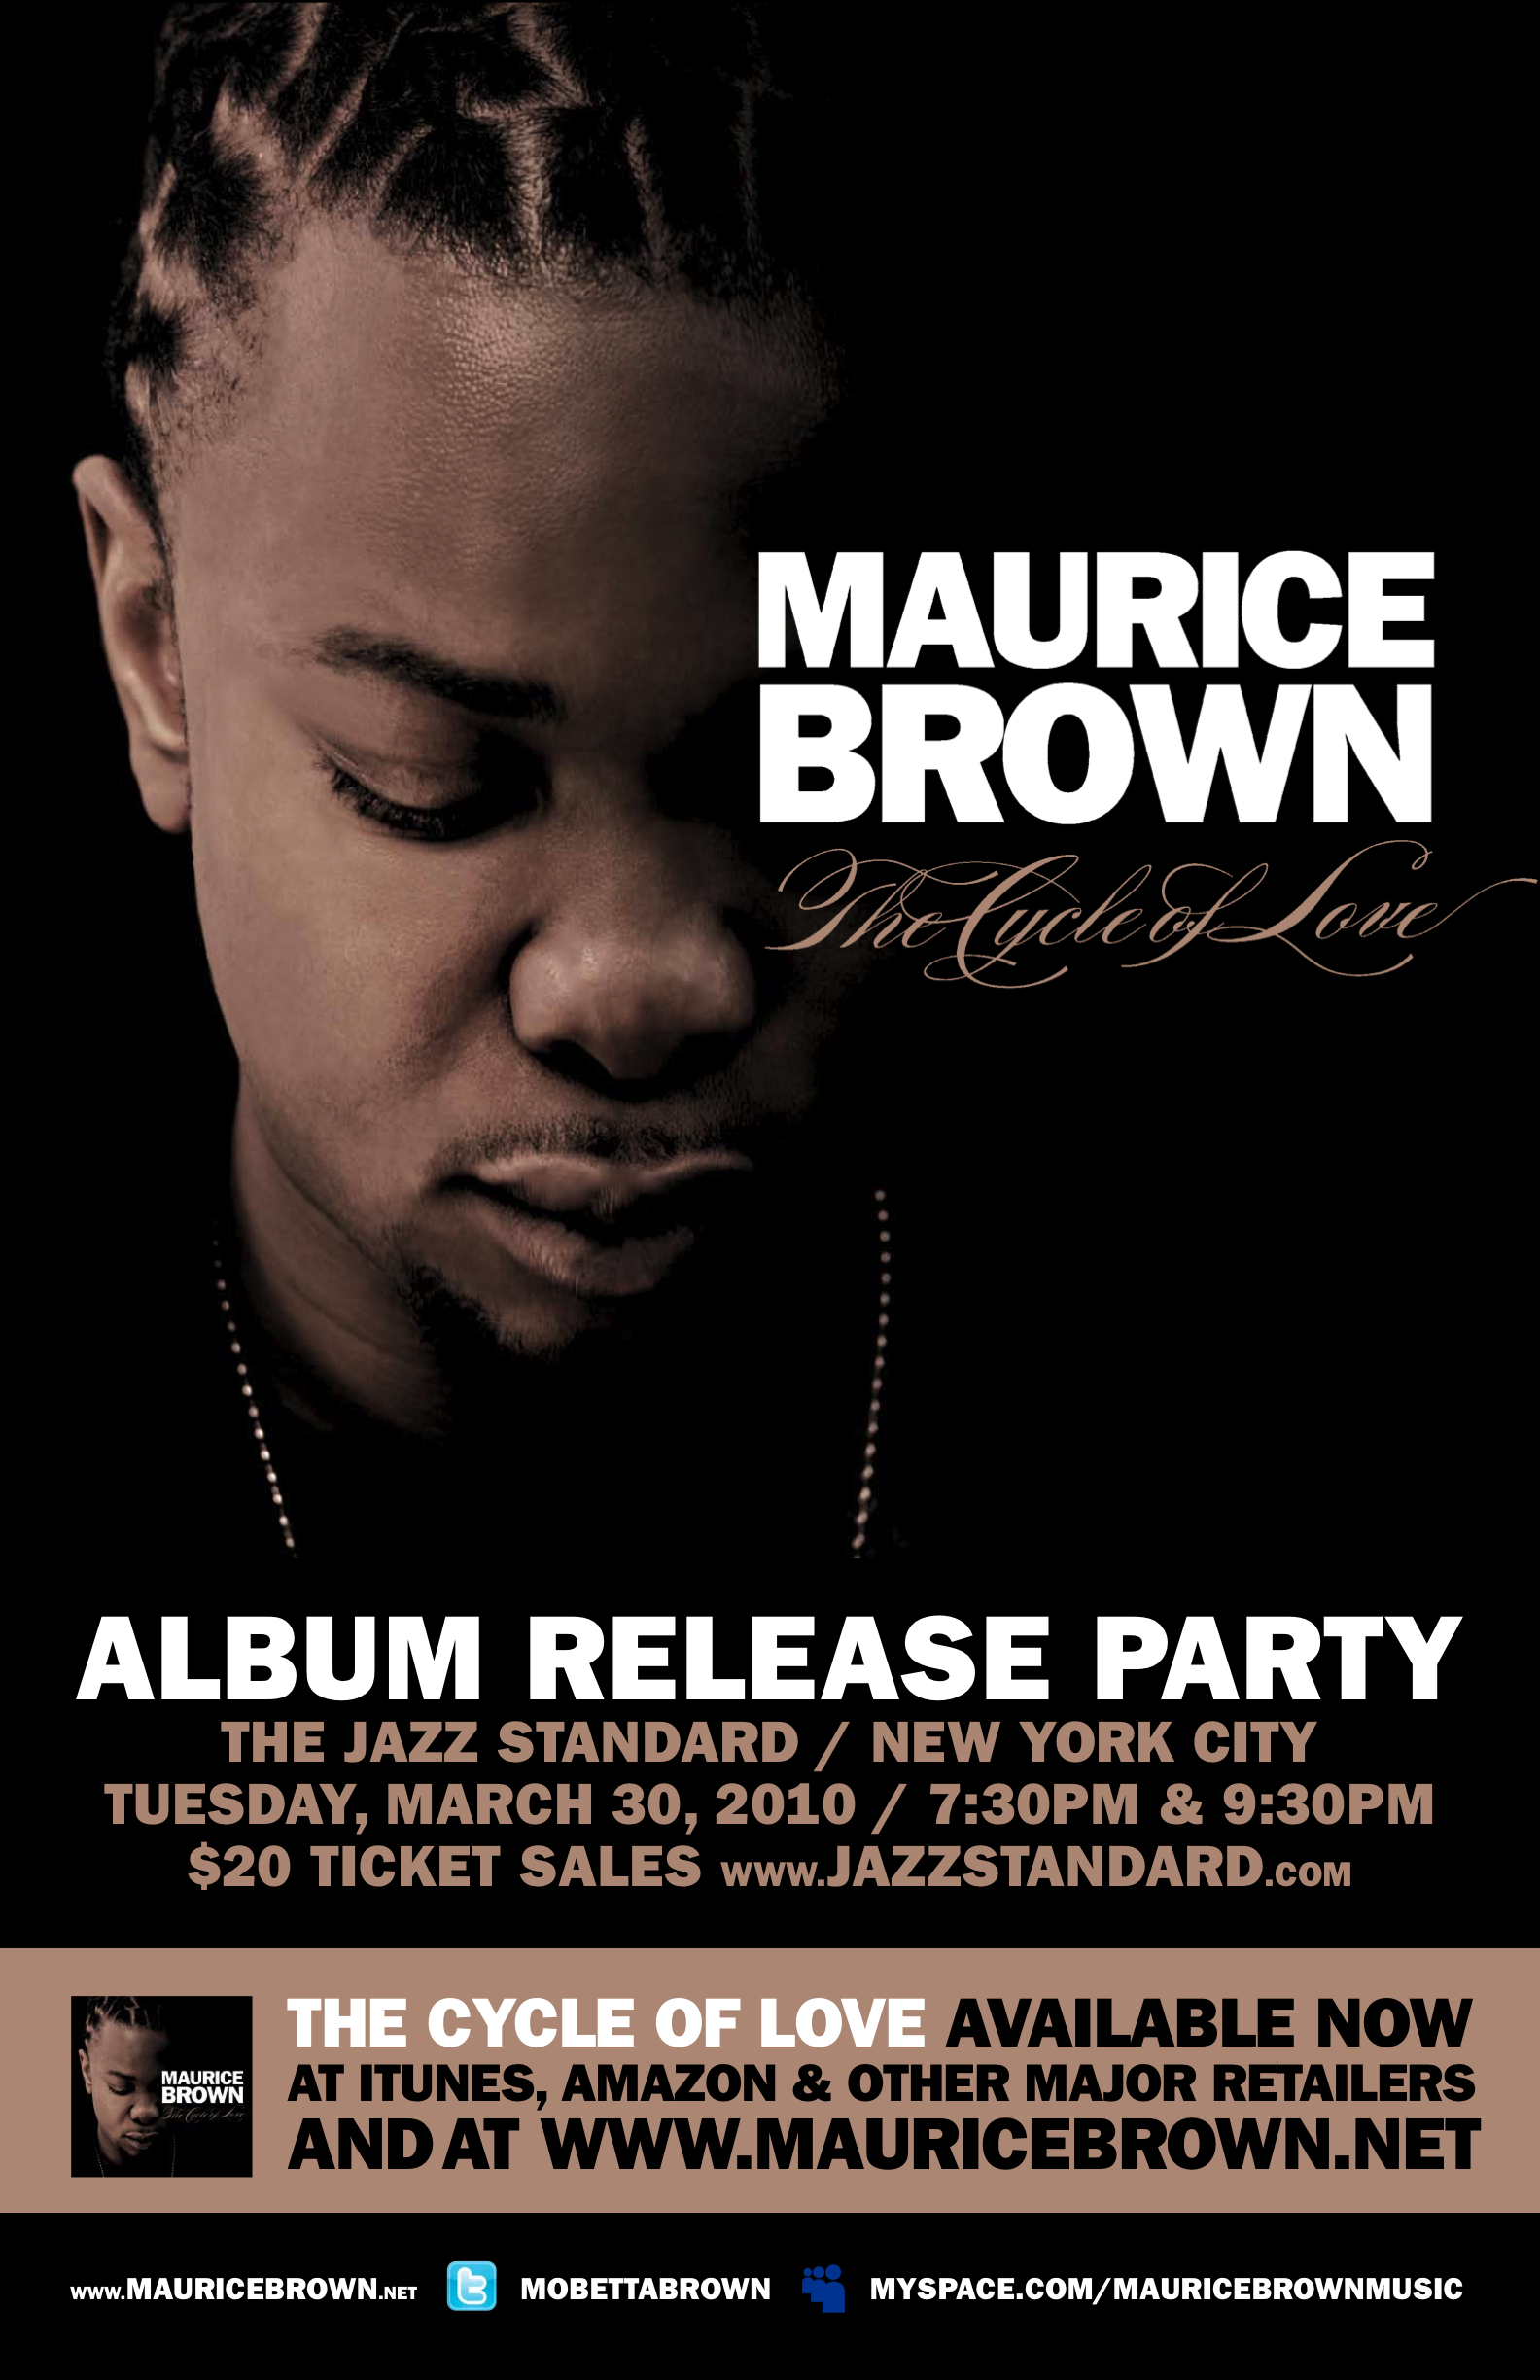 © Maurice Brown. All Rights Reserved.